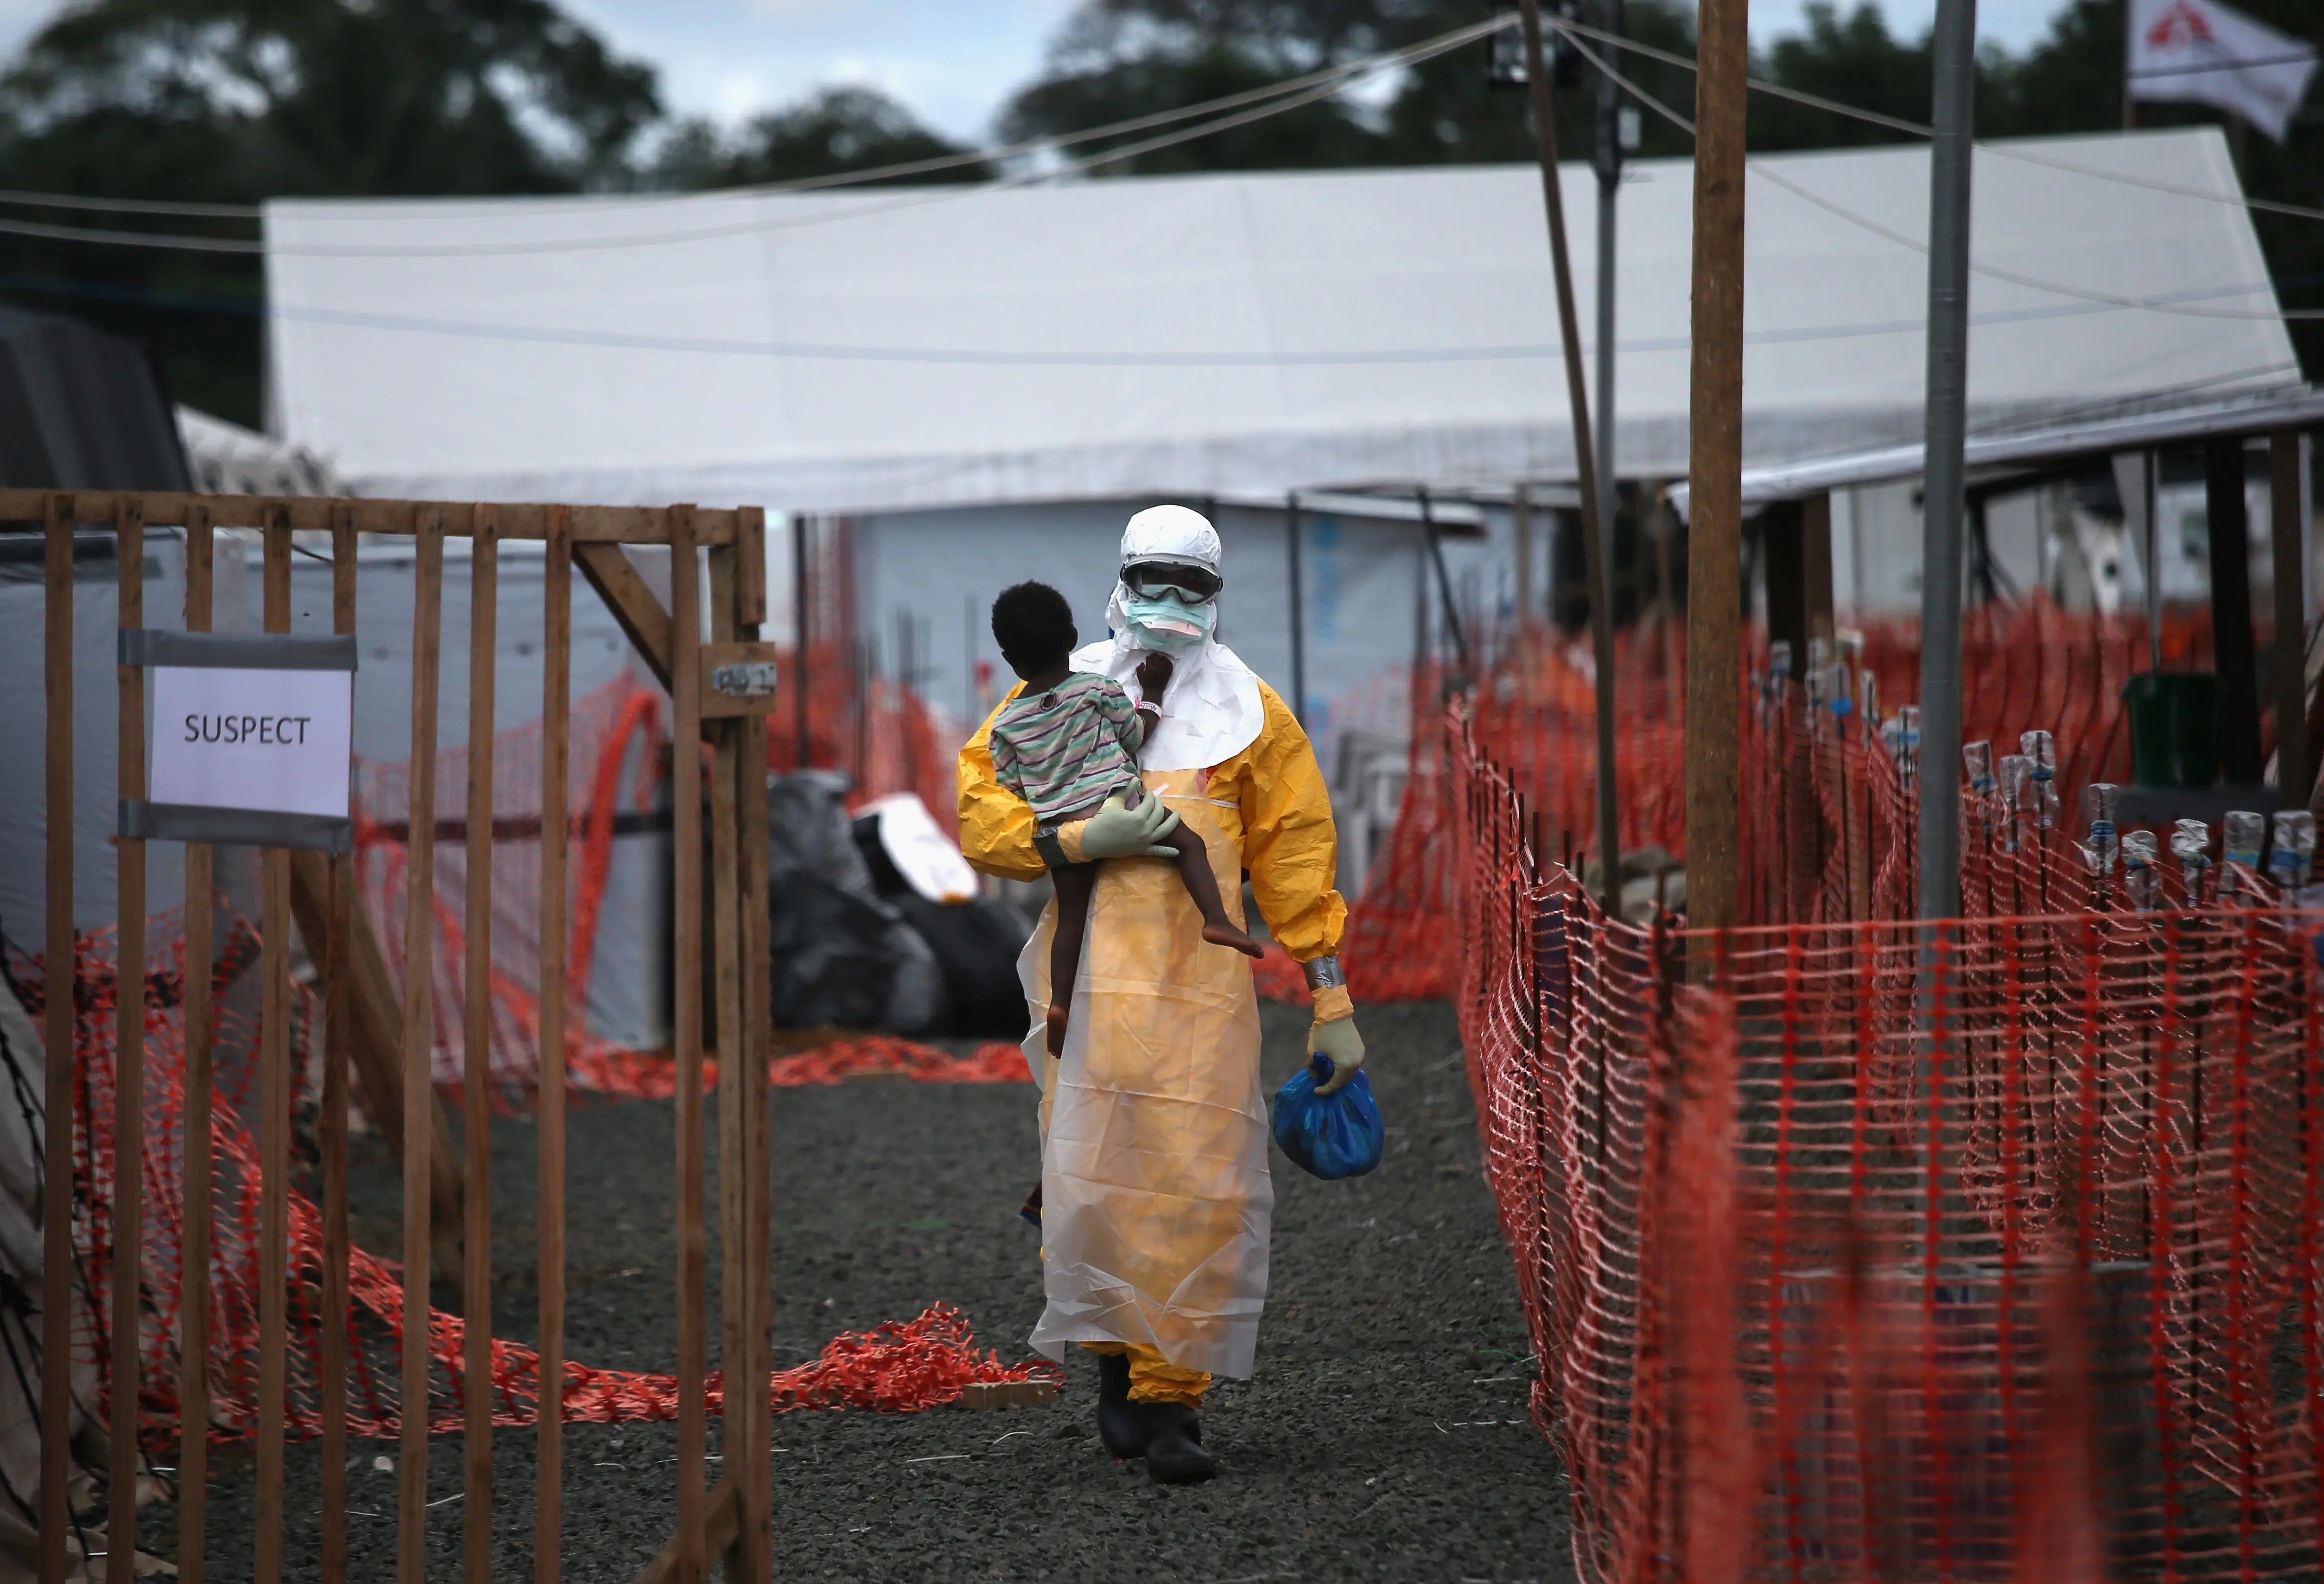 A Doctors Without Borders health worker in protective clothing carries a child suspected of having Ebola in the group's treatment center on Oct. 5 in Liberia.